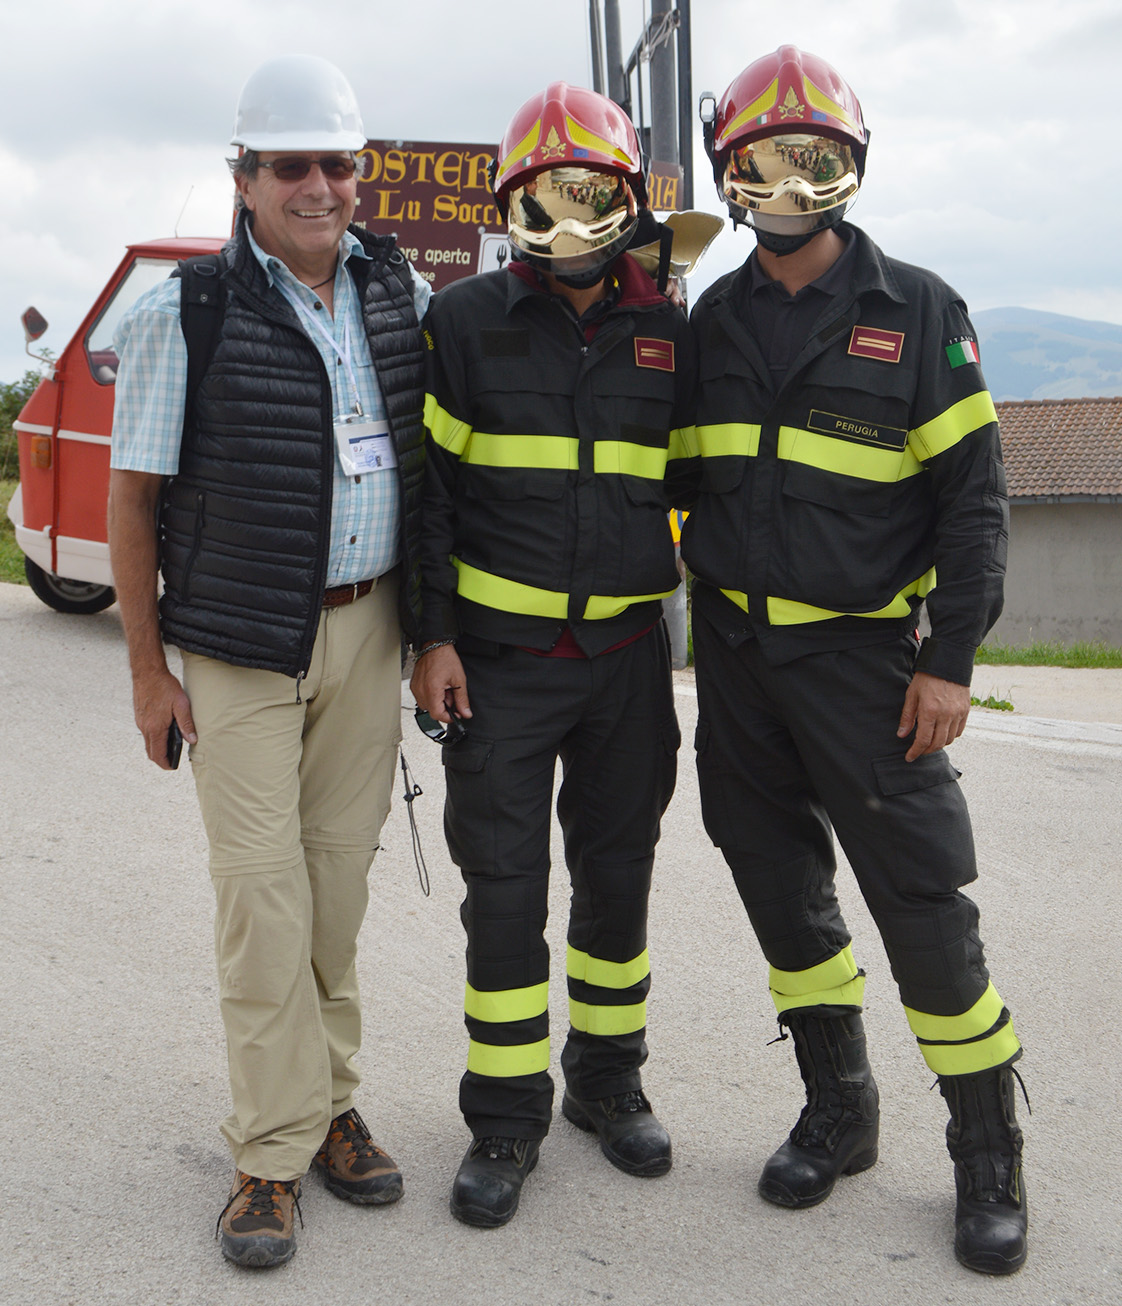 Richard Dreyer of Holmes Structures with Italian firefighters